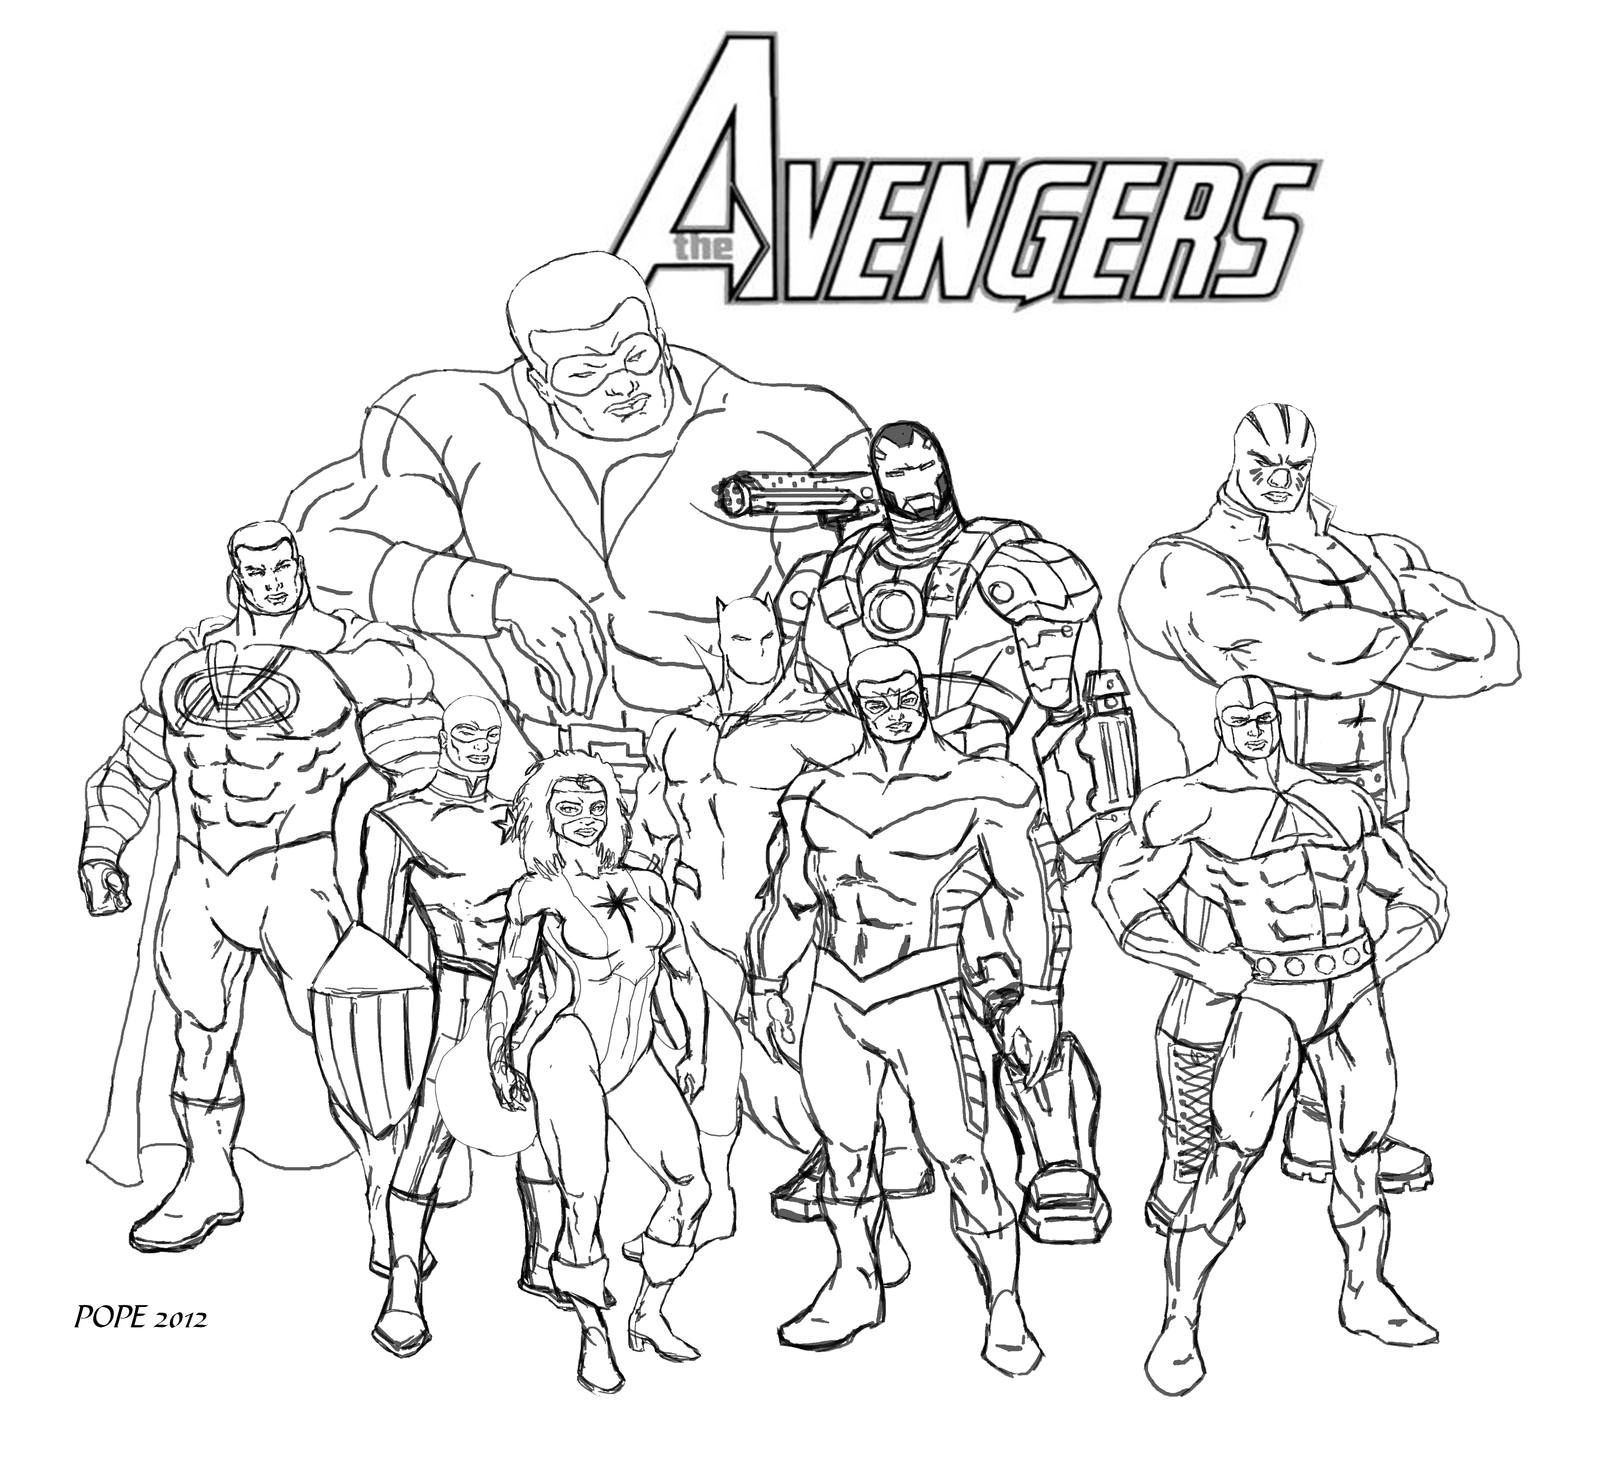 The Avengers Wip By Hulkdaddyg On DeviantArt